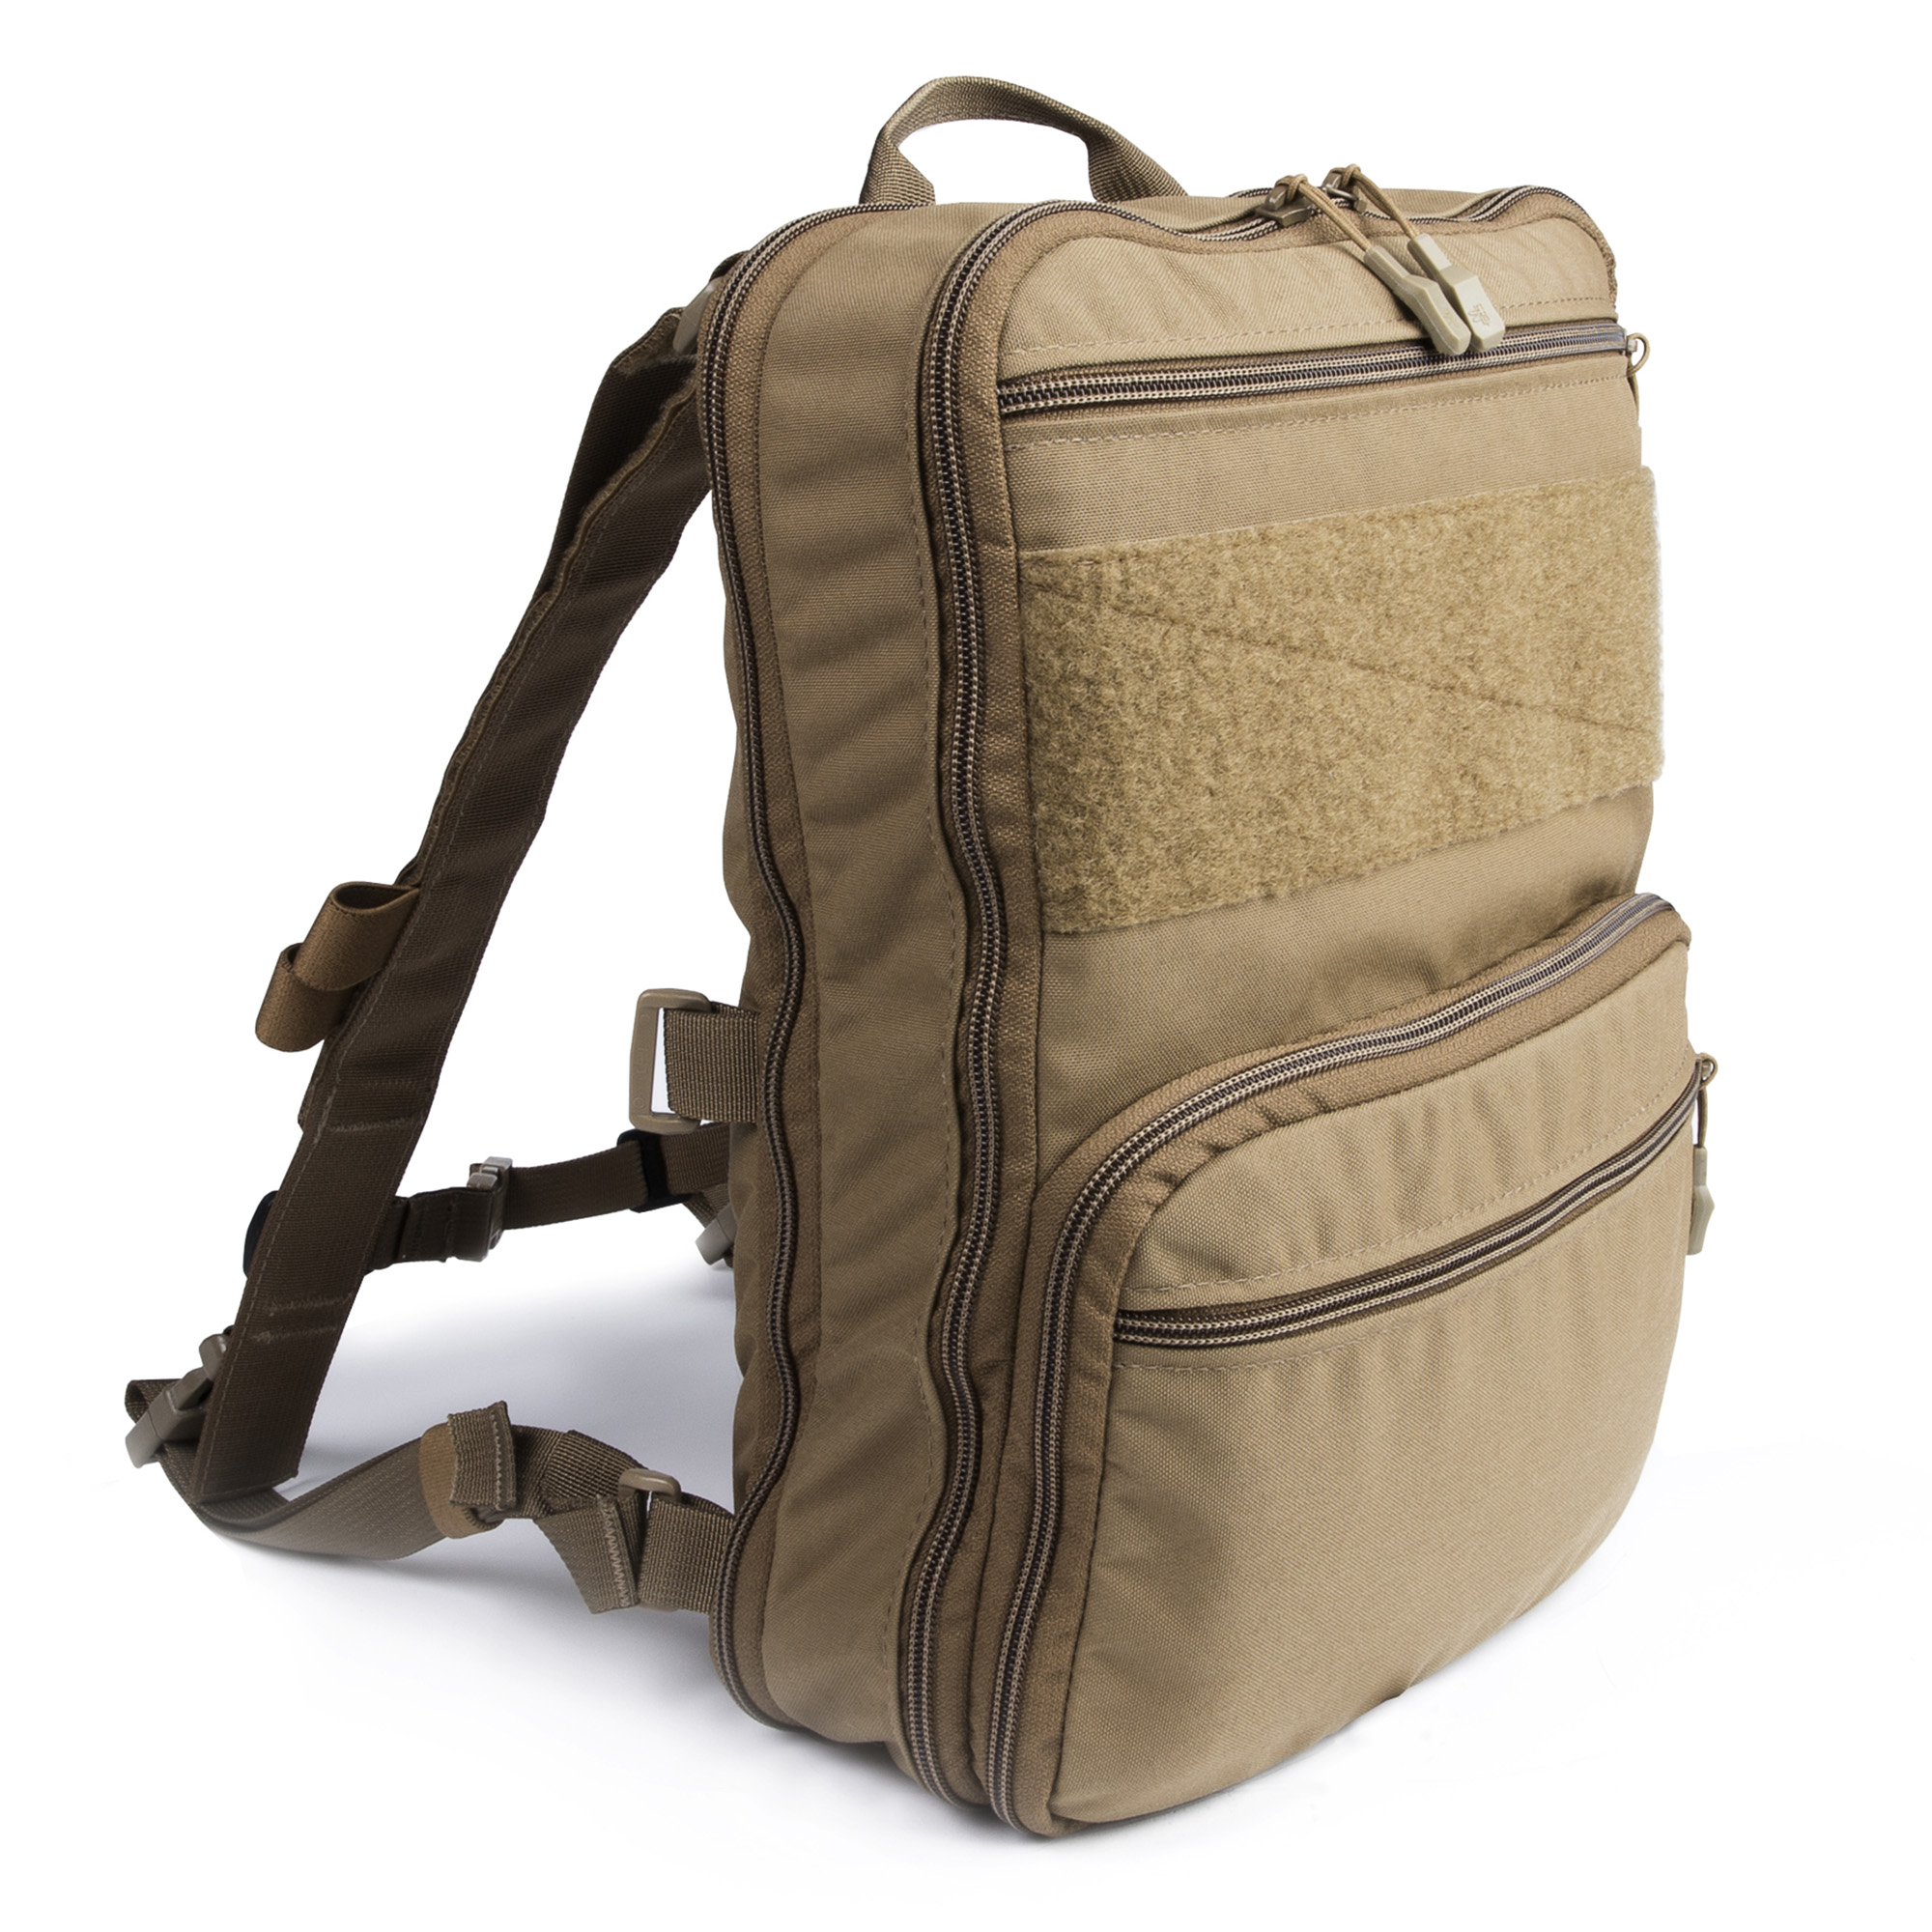 The D3 Flat Pack PLUS is a Hybrid Bag that bridges the gap between a small assaulter pack and a full sized day pack. It can go from an almost flat profile when compressed to over 1400 cubic inches when completely expanded.